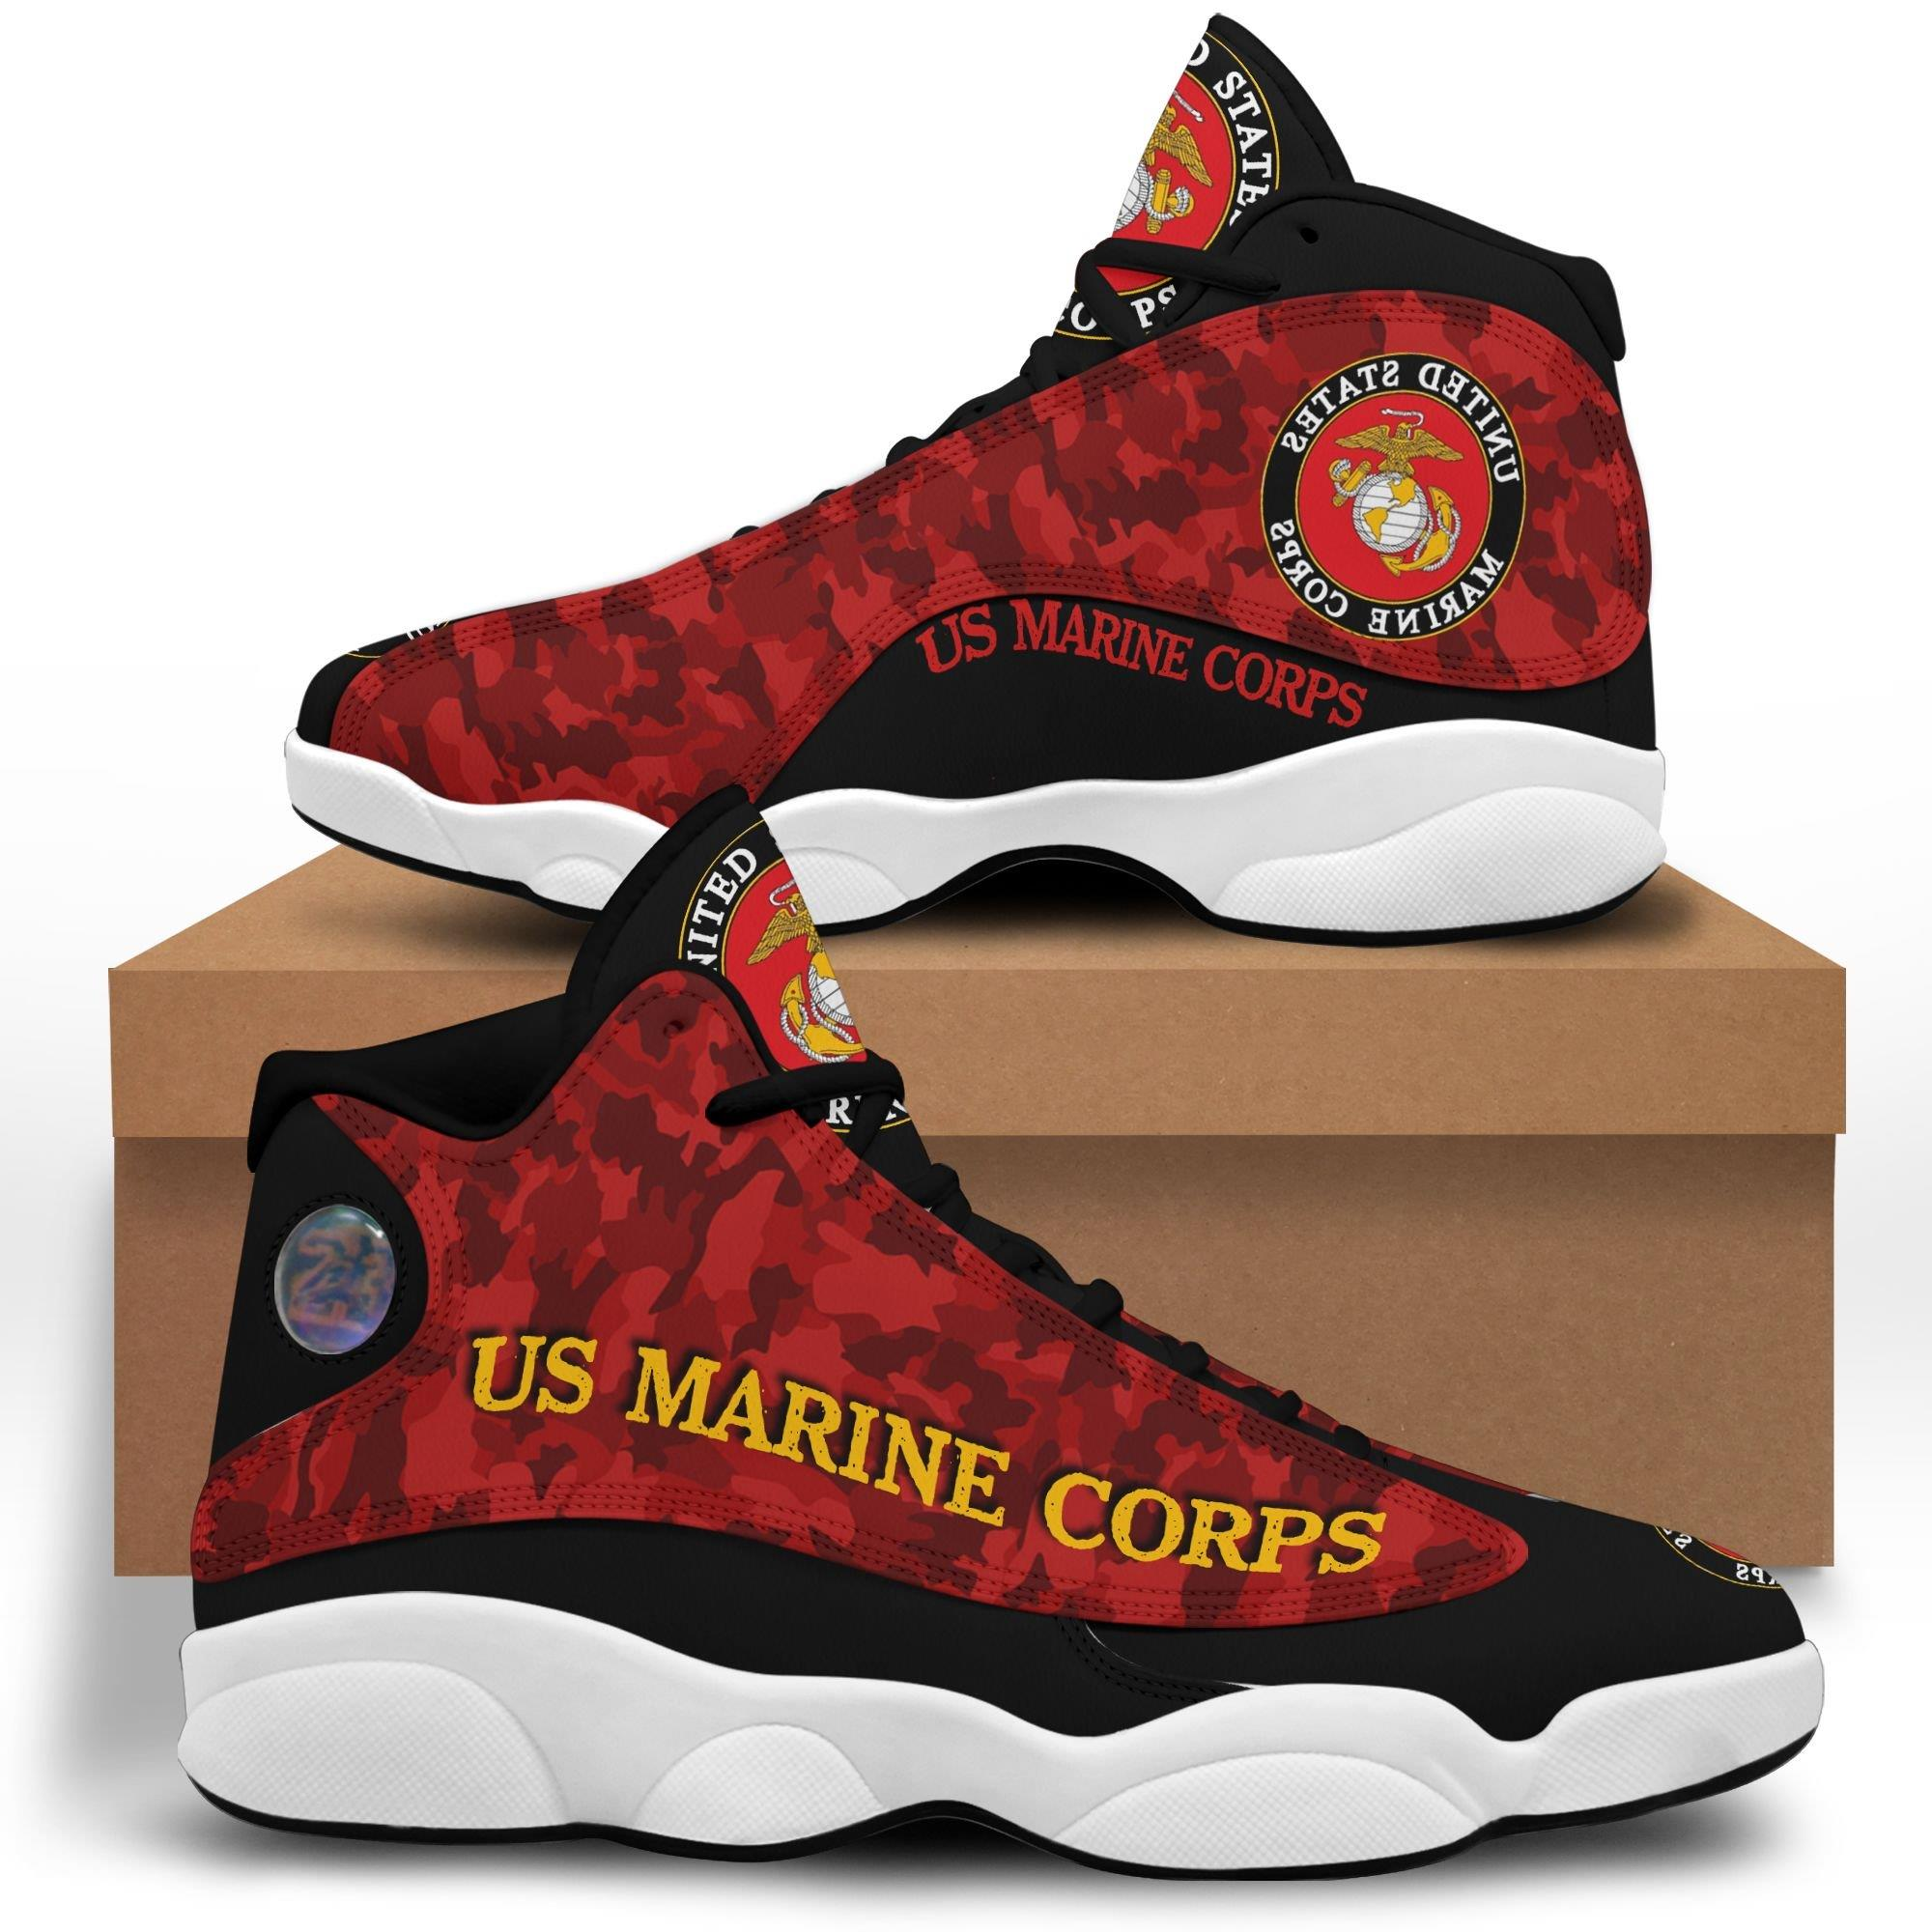 Us Marine Corps Air Jordan 13 Custom Sneakers Sport Shoes Full Size